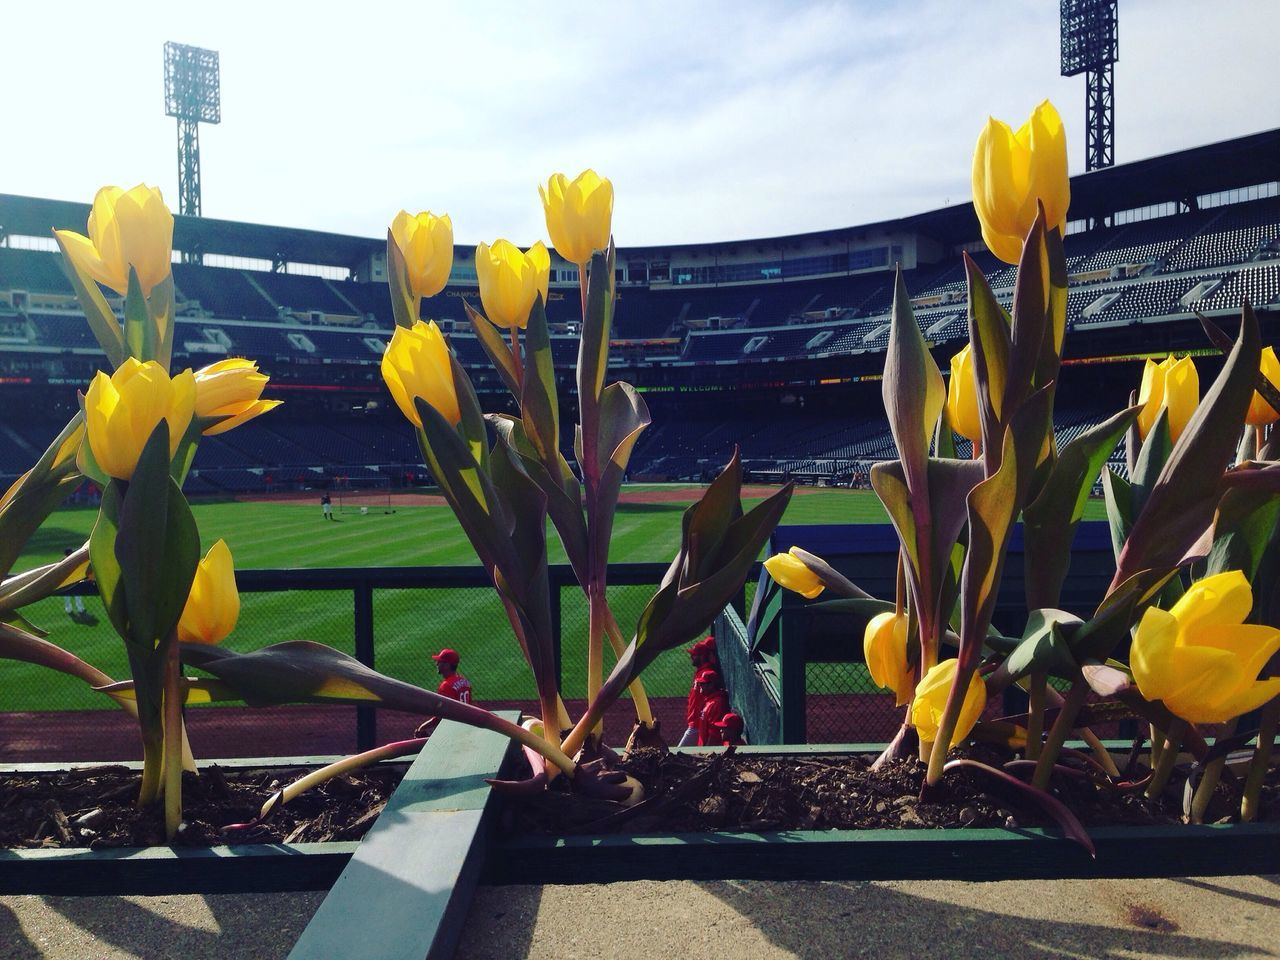 Baseball season is here PNC Park Pittsburgh Pittsburgh Pirates Springtime Flowers Baseball Baseball Field Baseball Season Showcase April